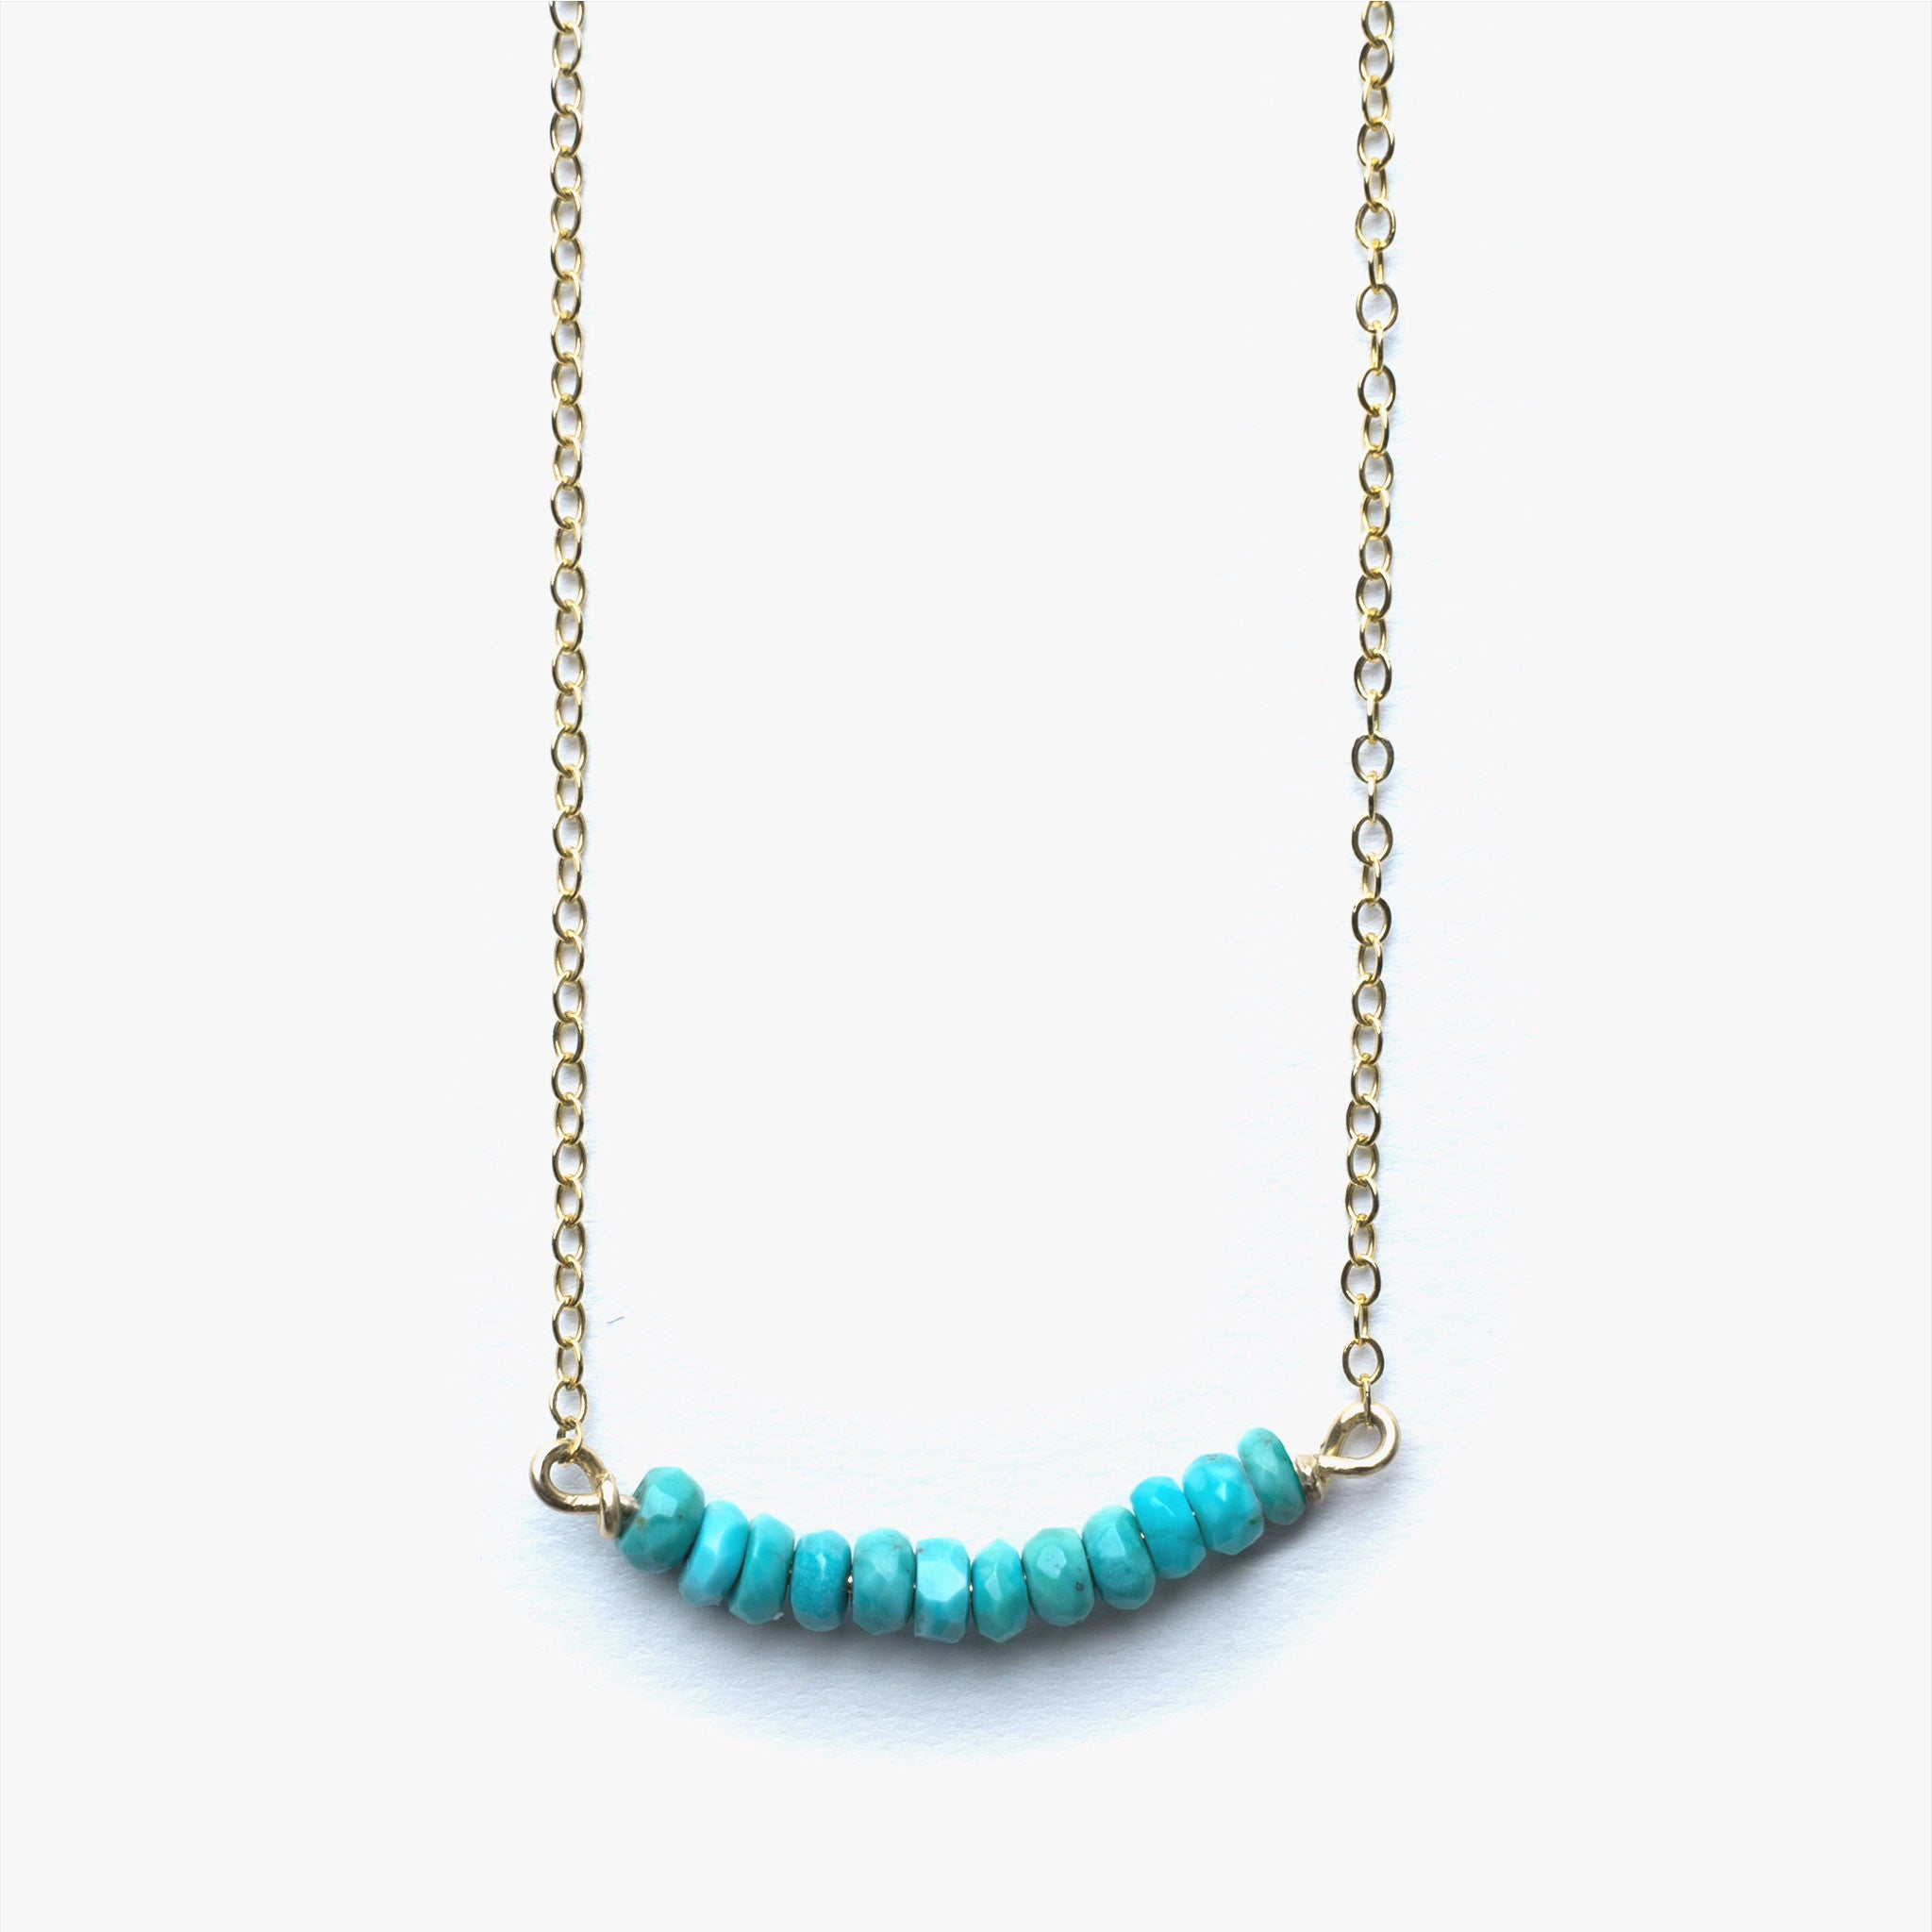 Wanderlust Life 14k gold filled chain necklace with turquoise beaded bar